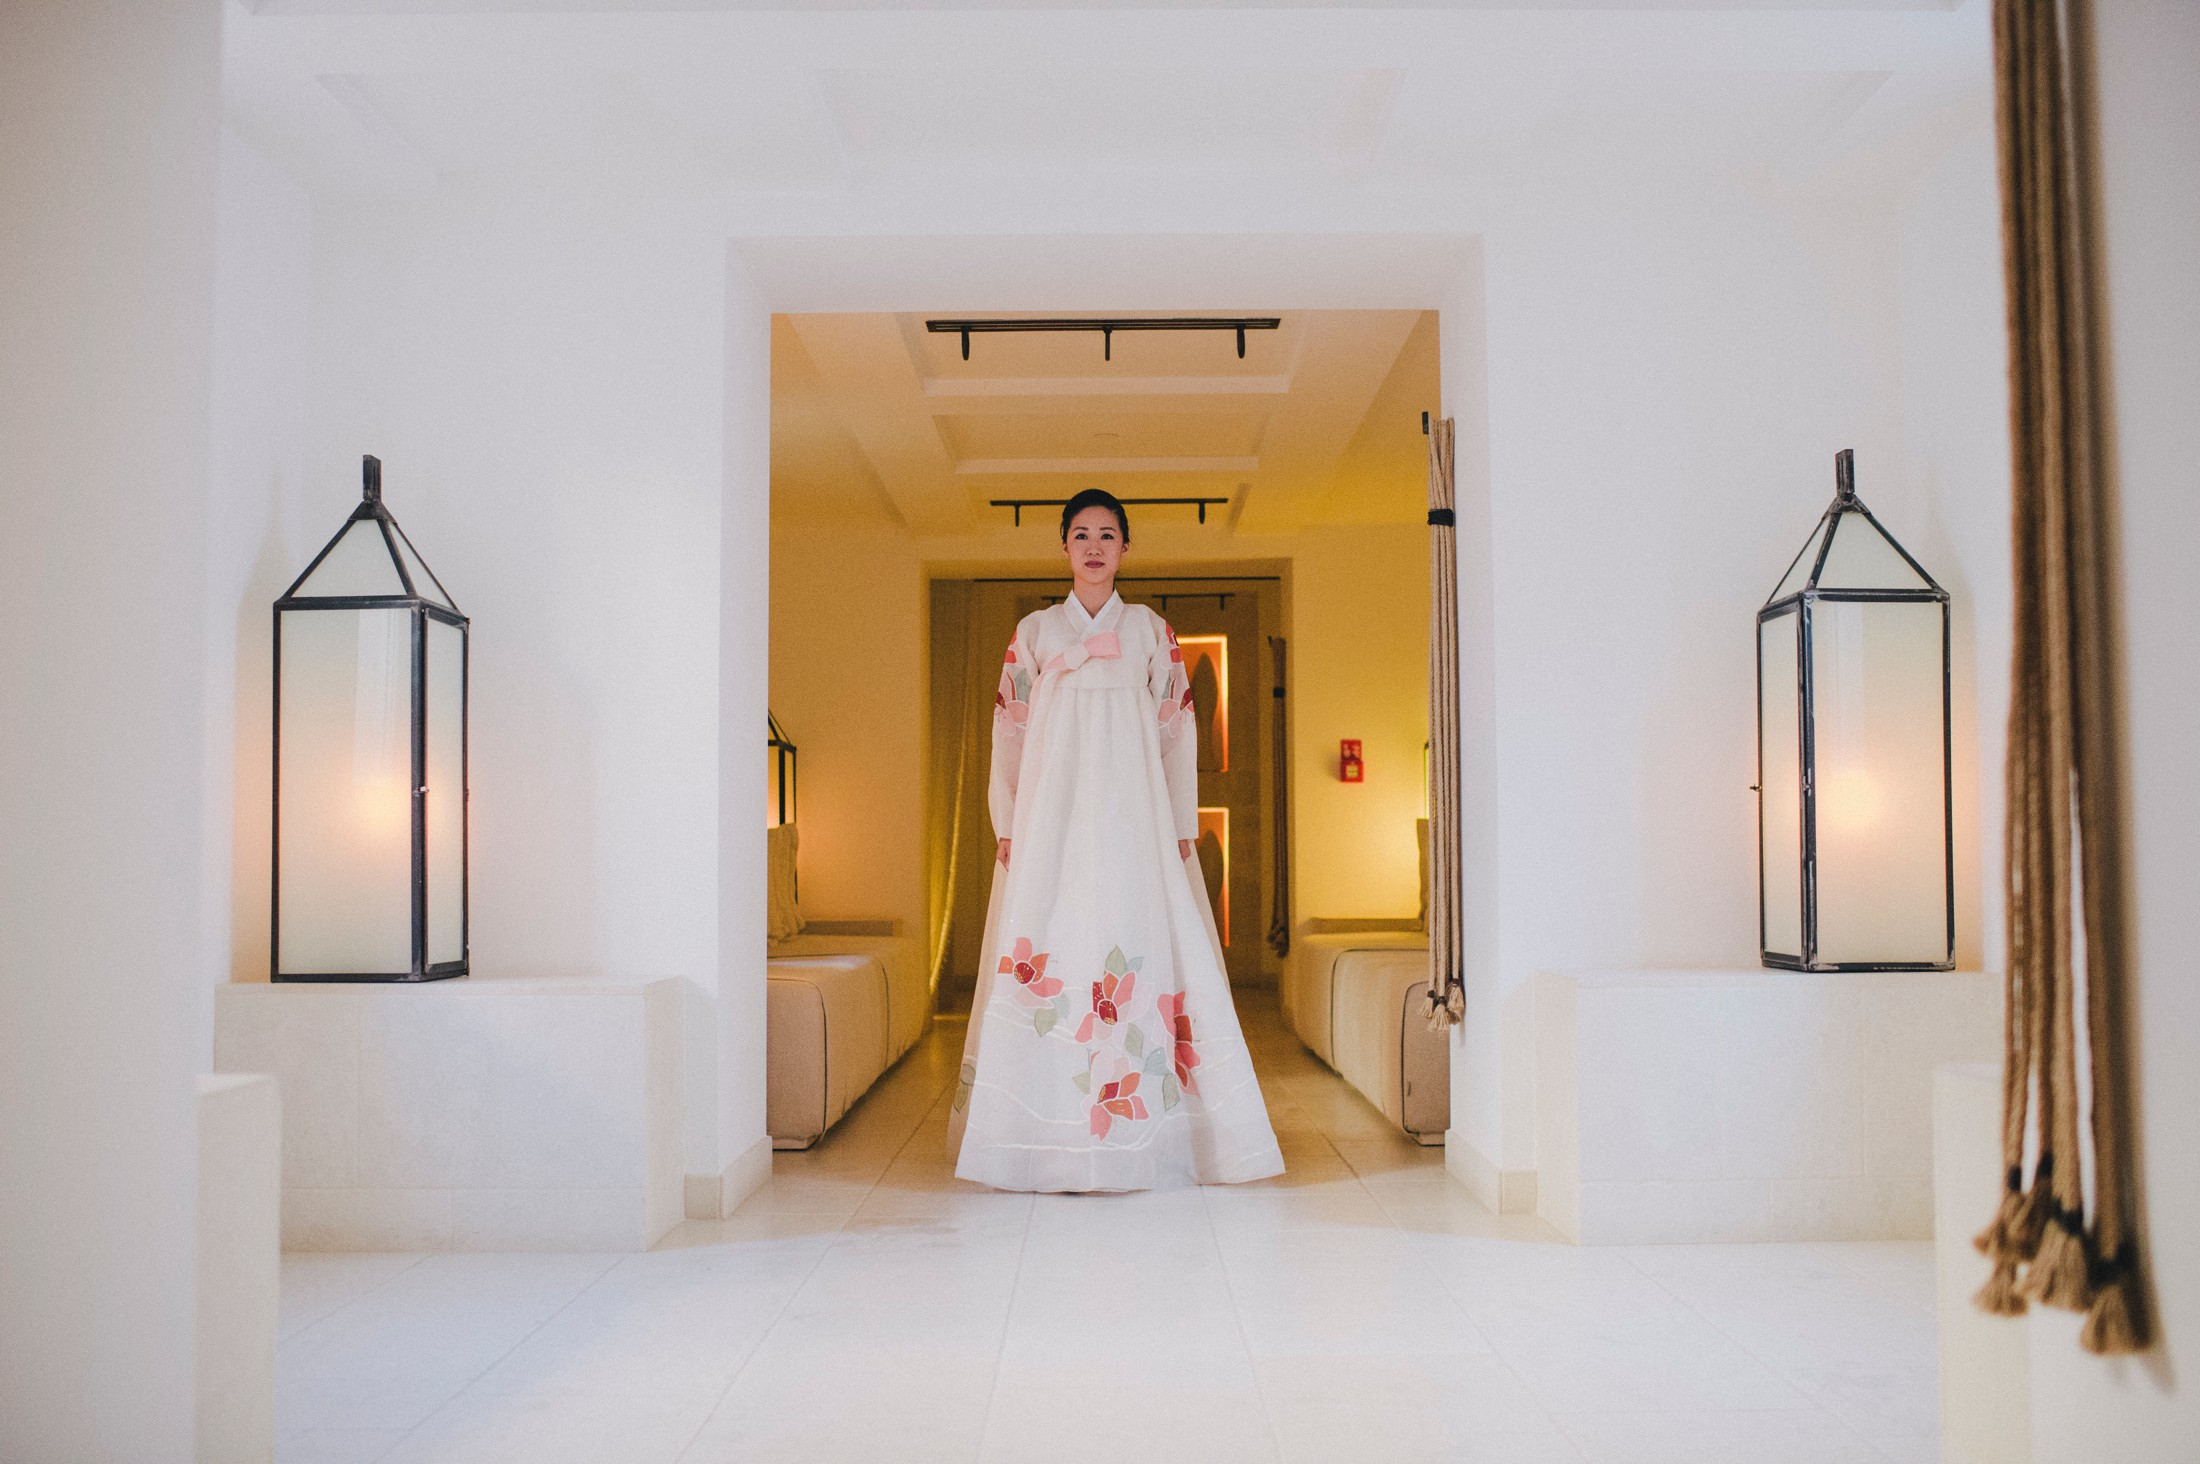 wedding guest in a traditional Korean dressat borgo Egnazia Apulia